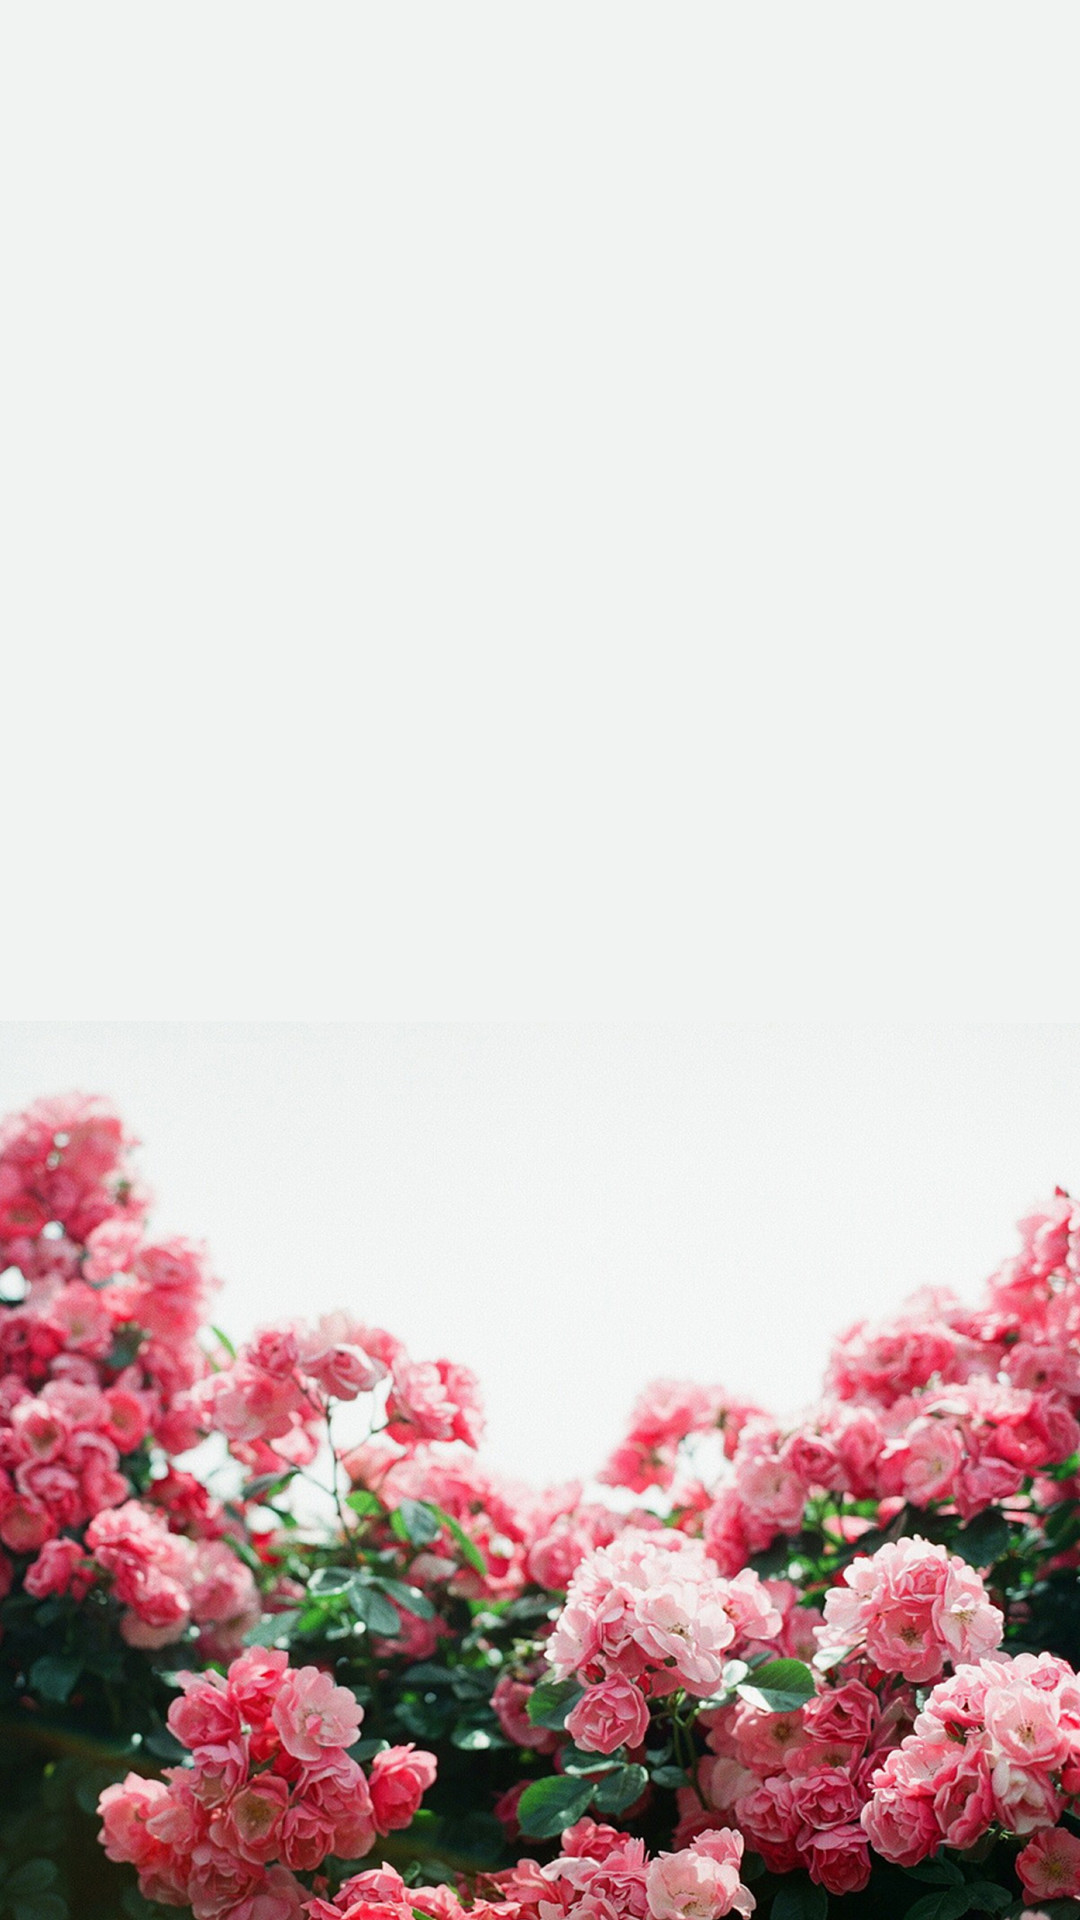 Iphone Wallpapers Tumblr (87+ background pictures)